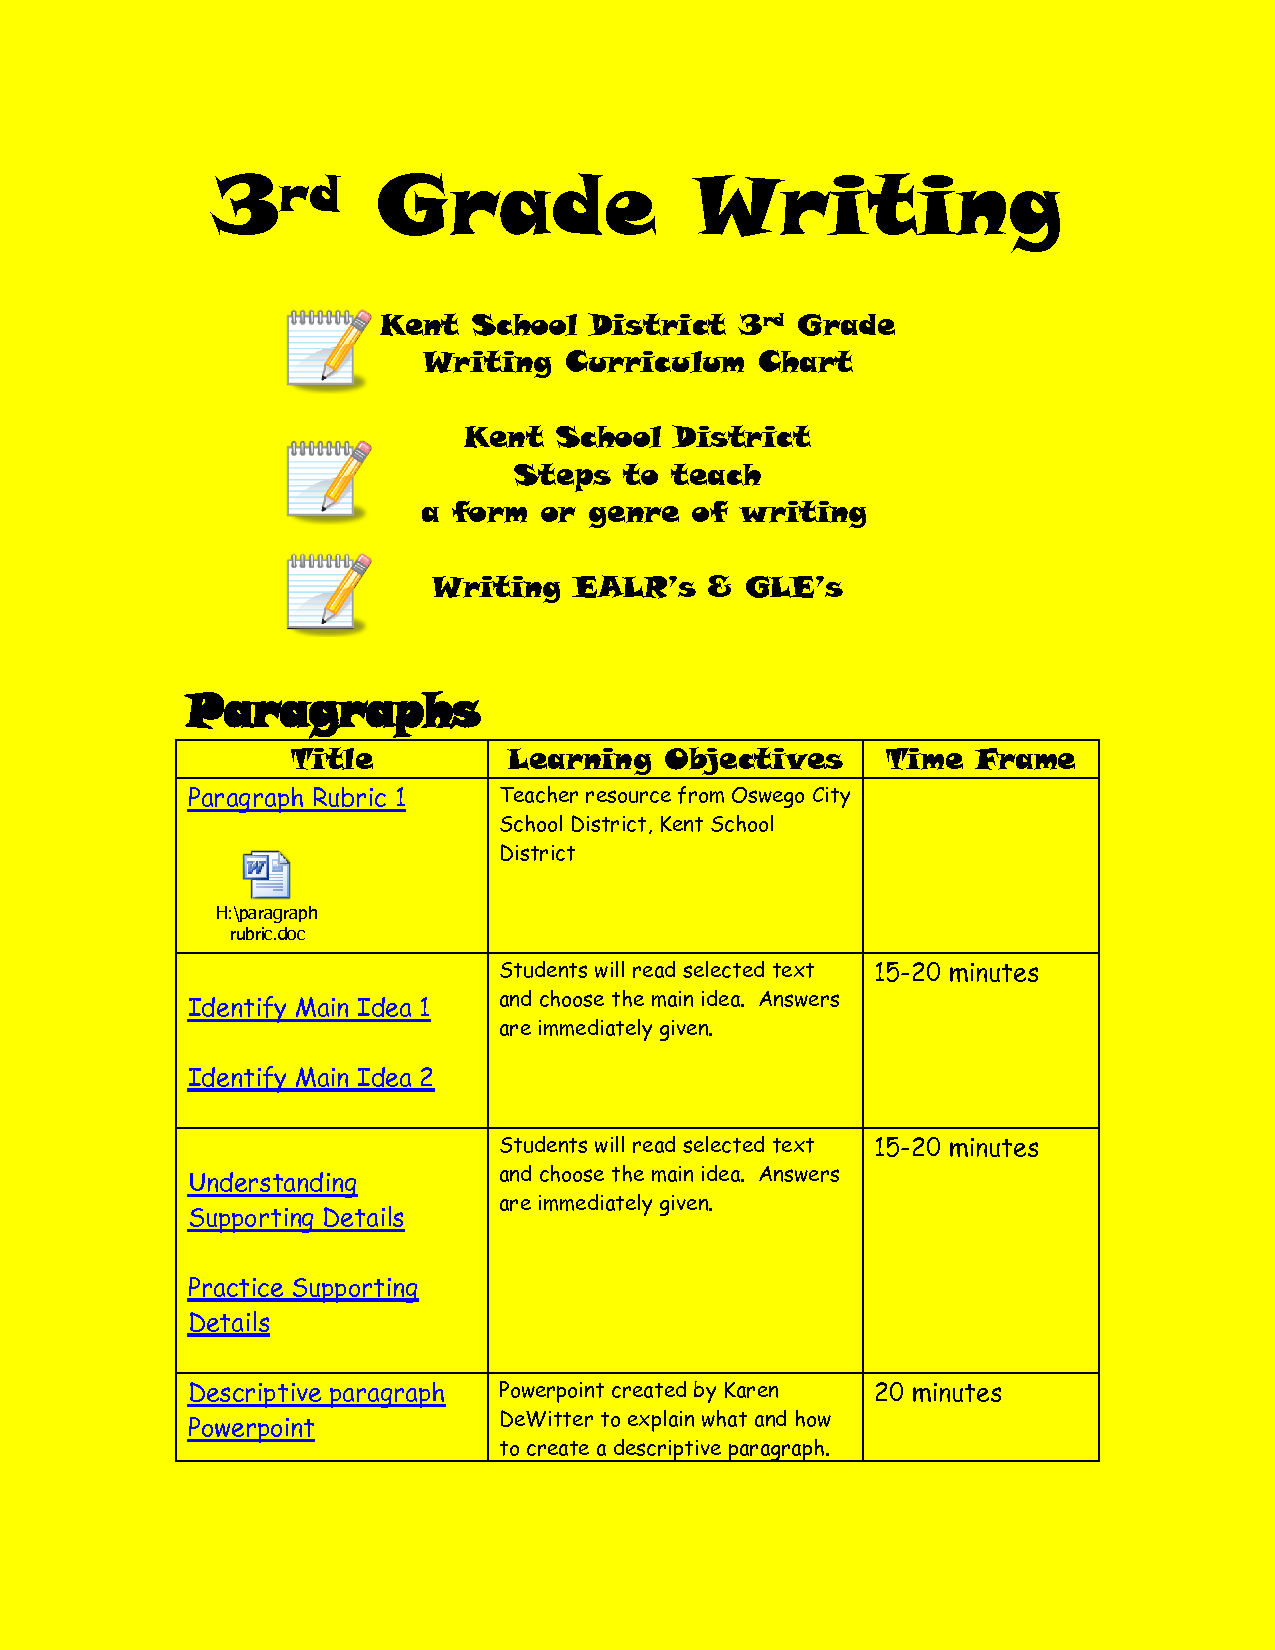 How to write an essay in 3rd grade